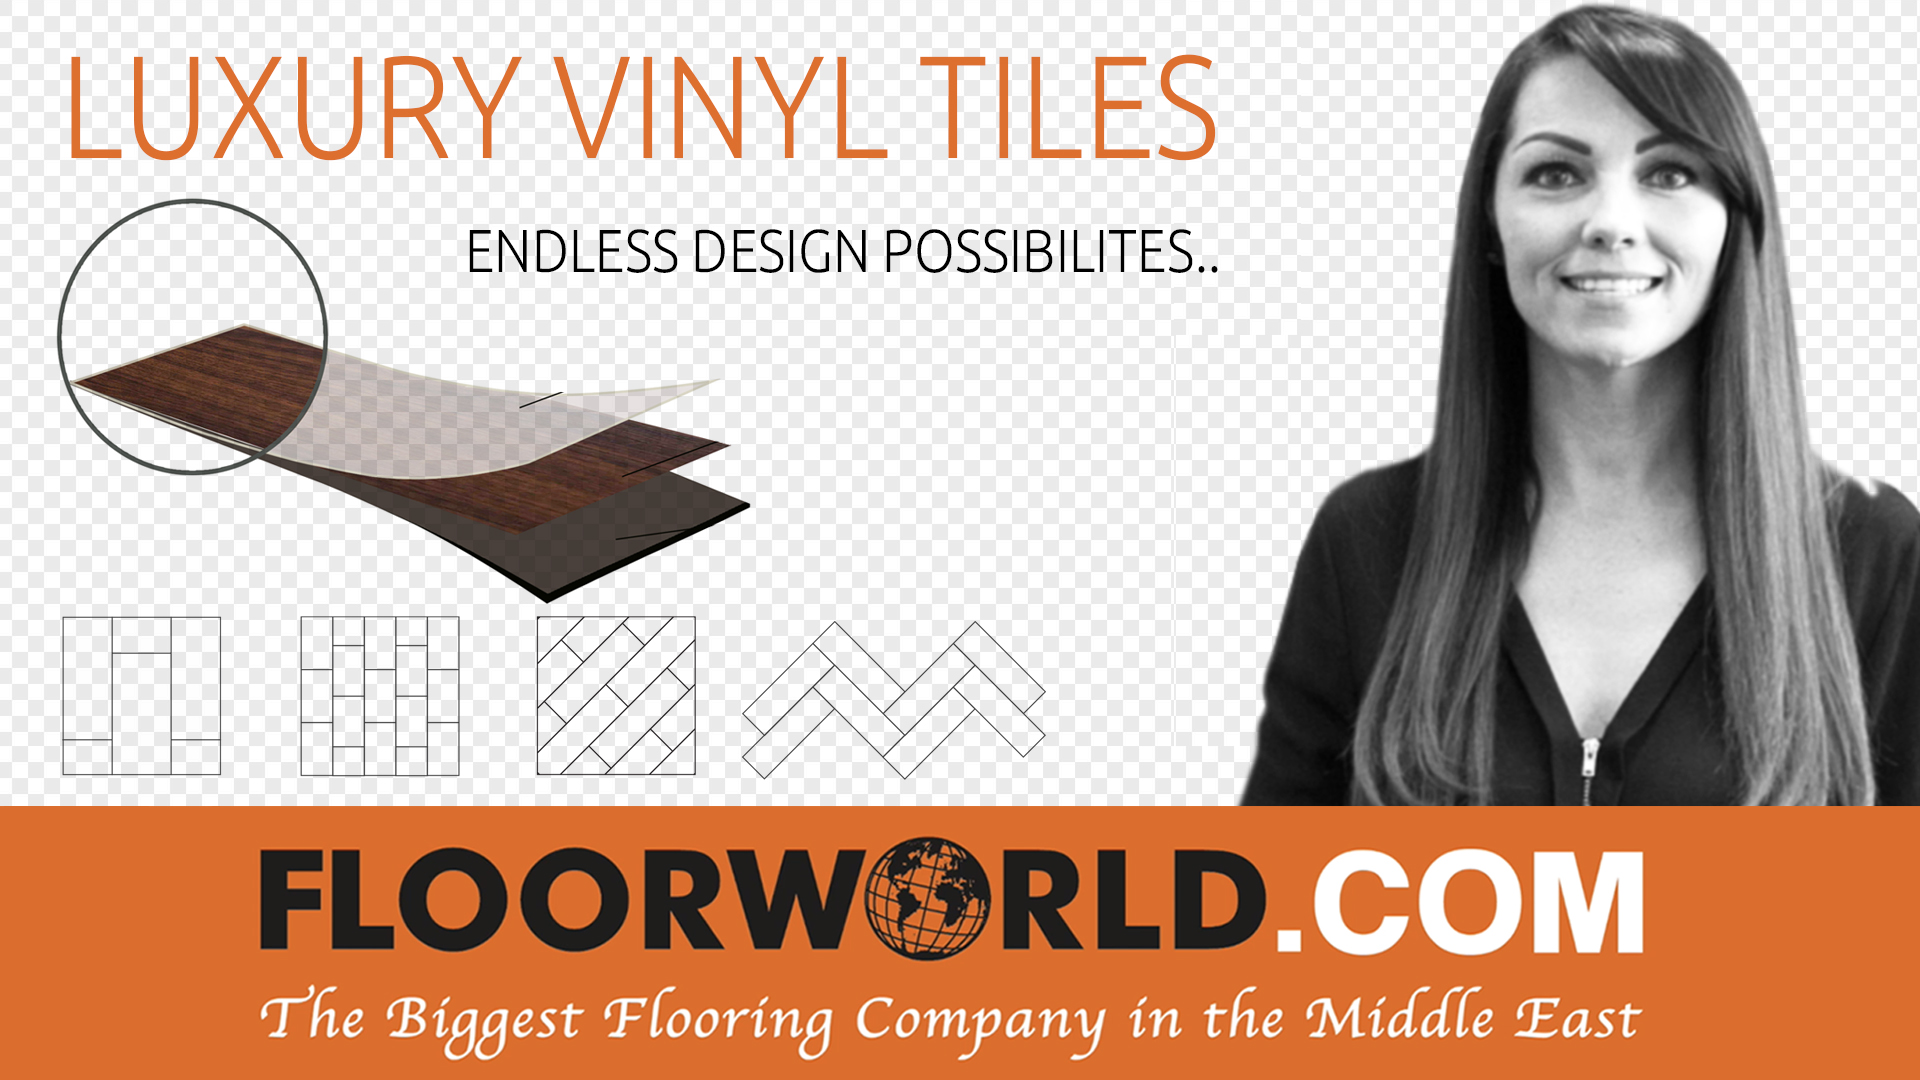 What is Luxury Vinyl Tiles?